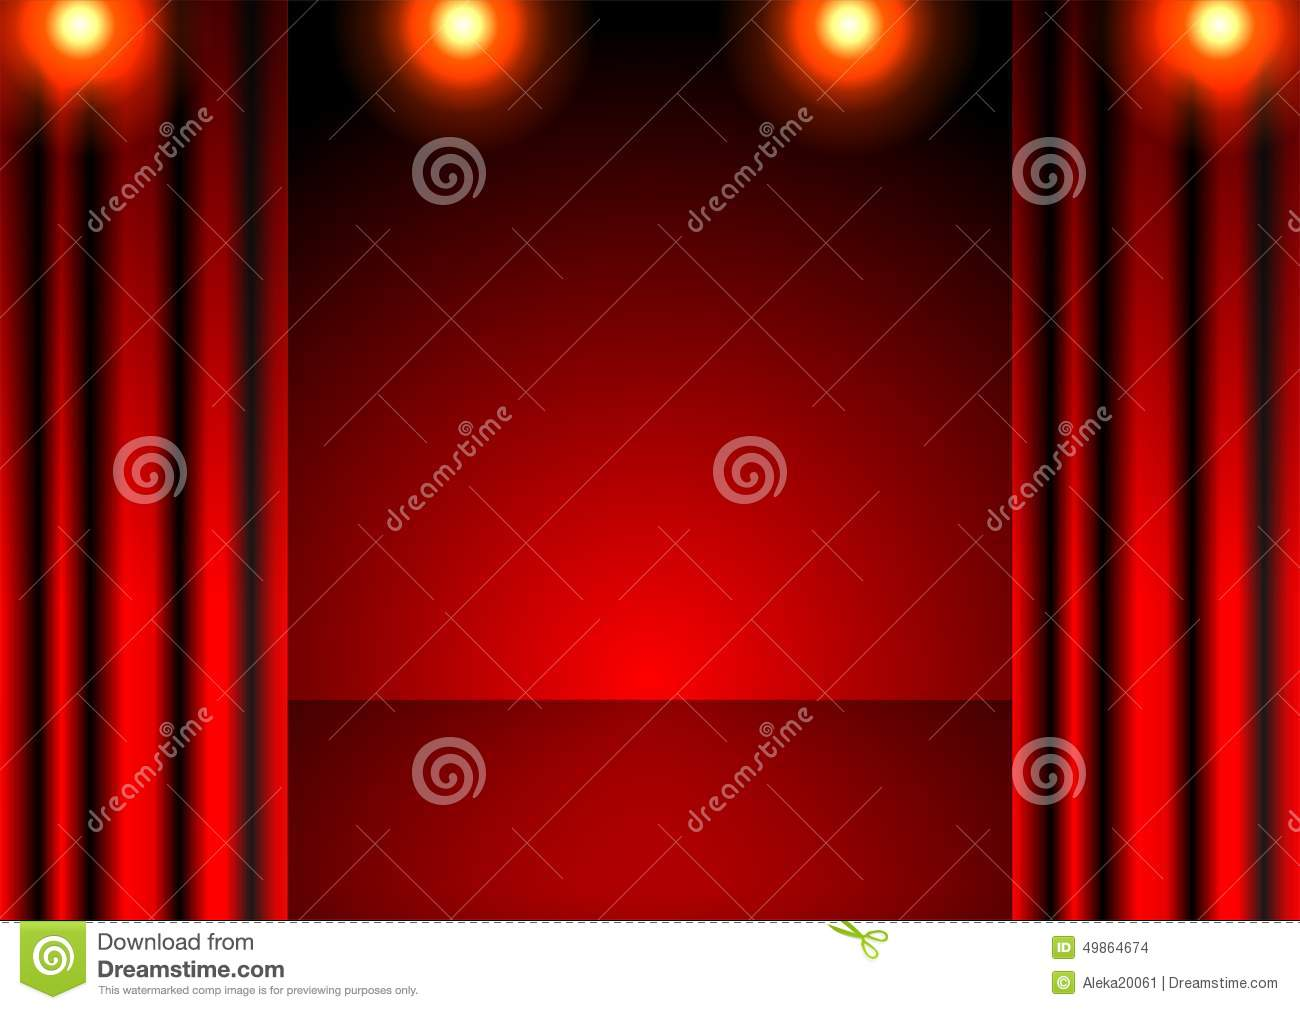 Red stage curtain with lights - Red Stage Curtain With Lights Red Stage Curtain And Bright Lights